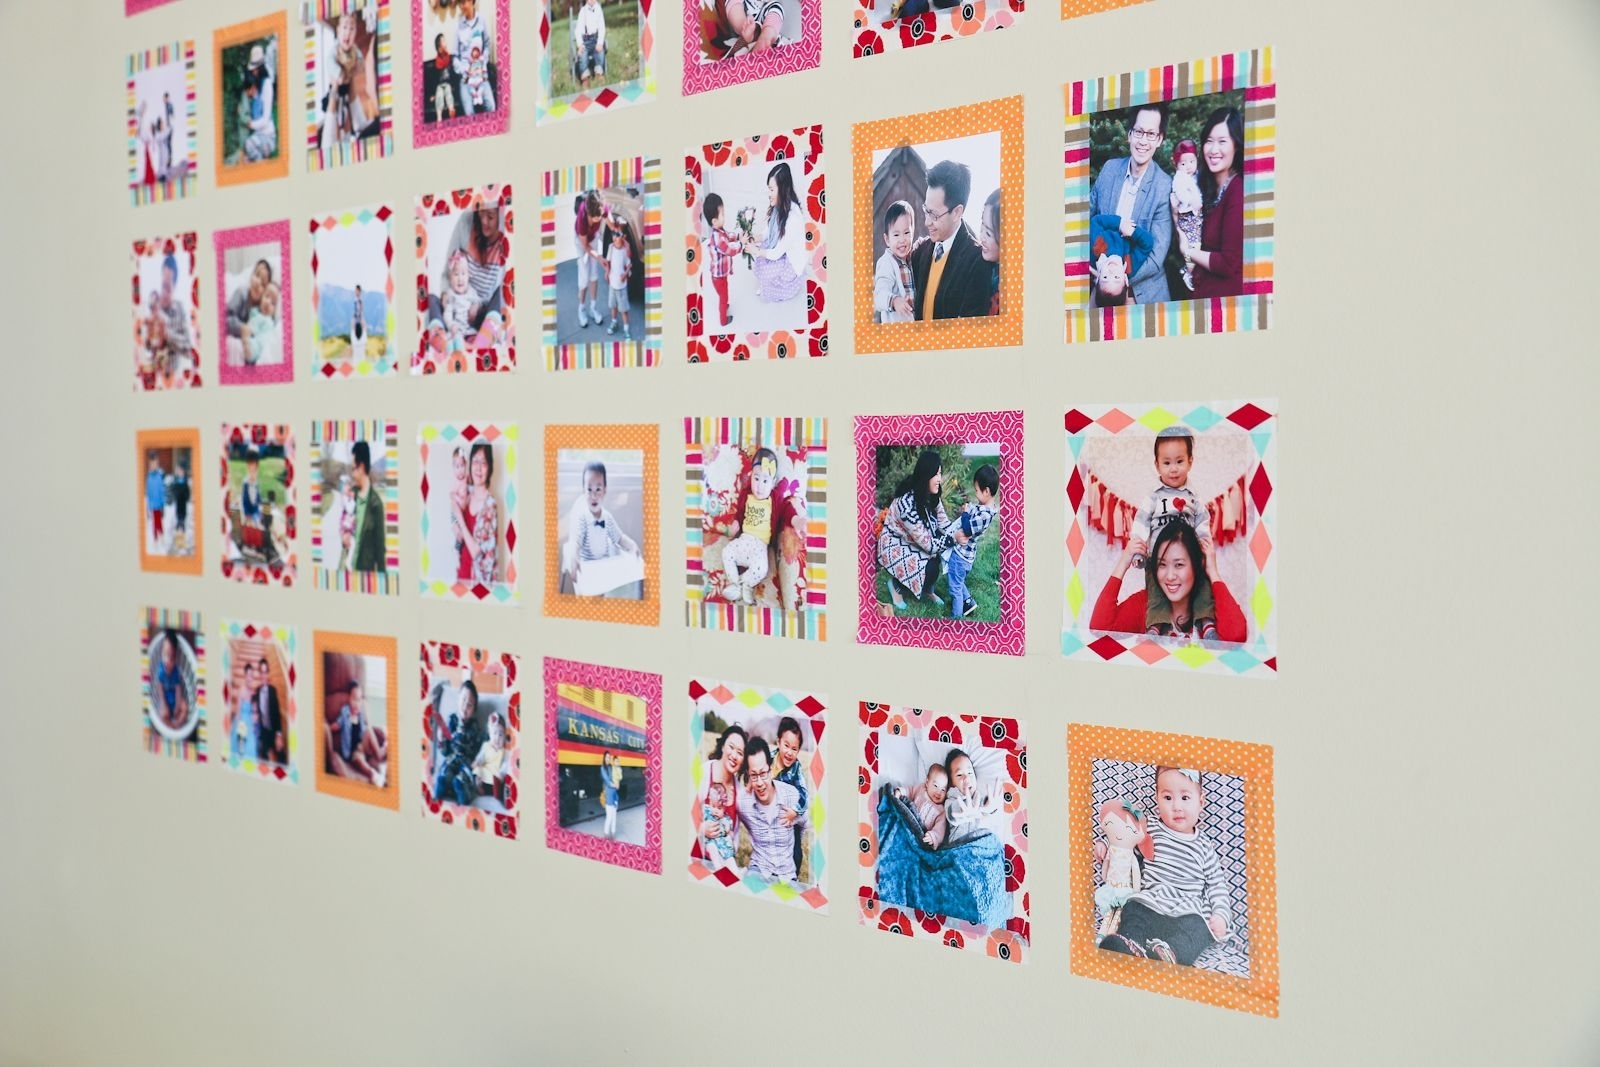 Instagram Wall Art With Washi Tape | Instagram Wall And Walls within Instagram Wall Art (Image 13 of 20)